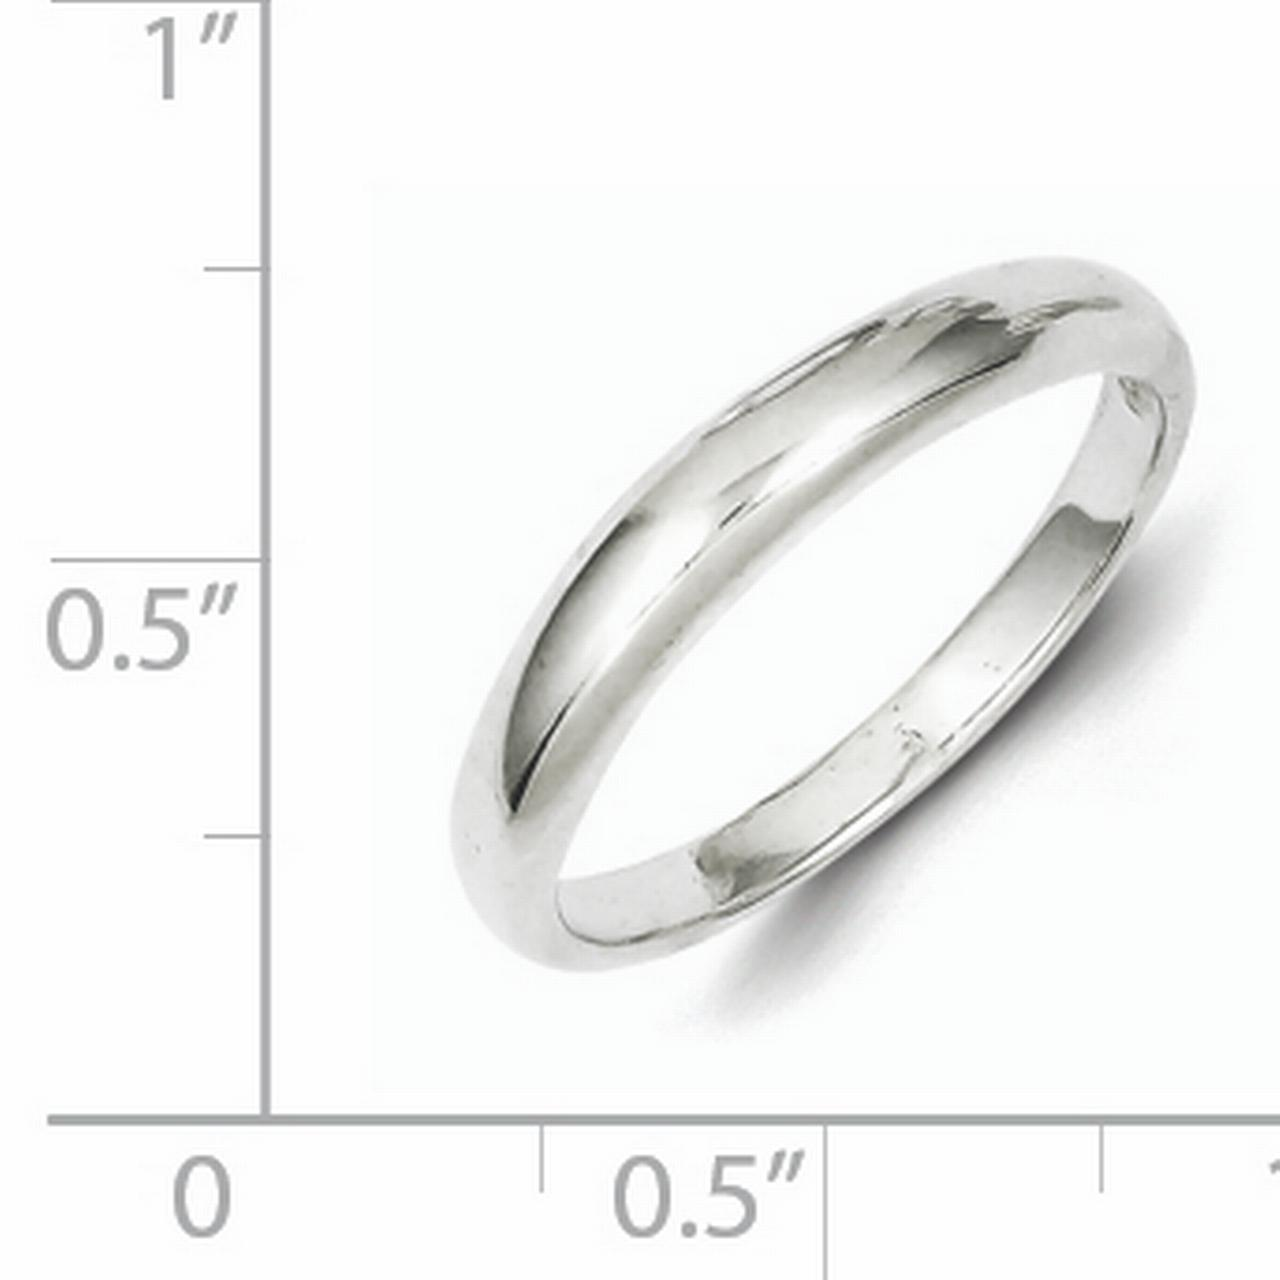 925 Sterling Silver Stackable Wedding Ring Band Size 8.00 Classic Fine Jewelry Gifts For Women For Her - image 1 of 2